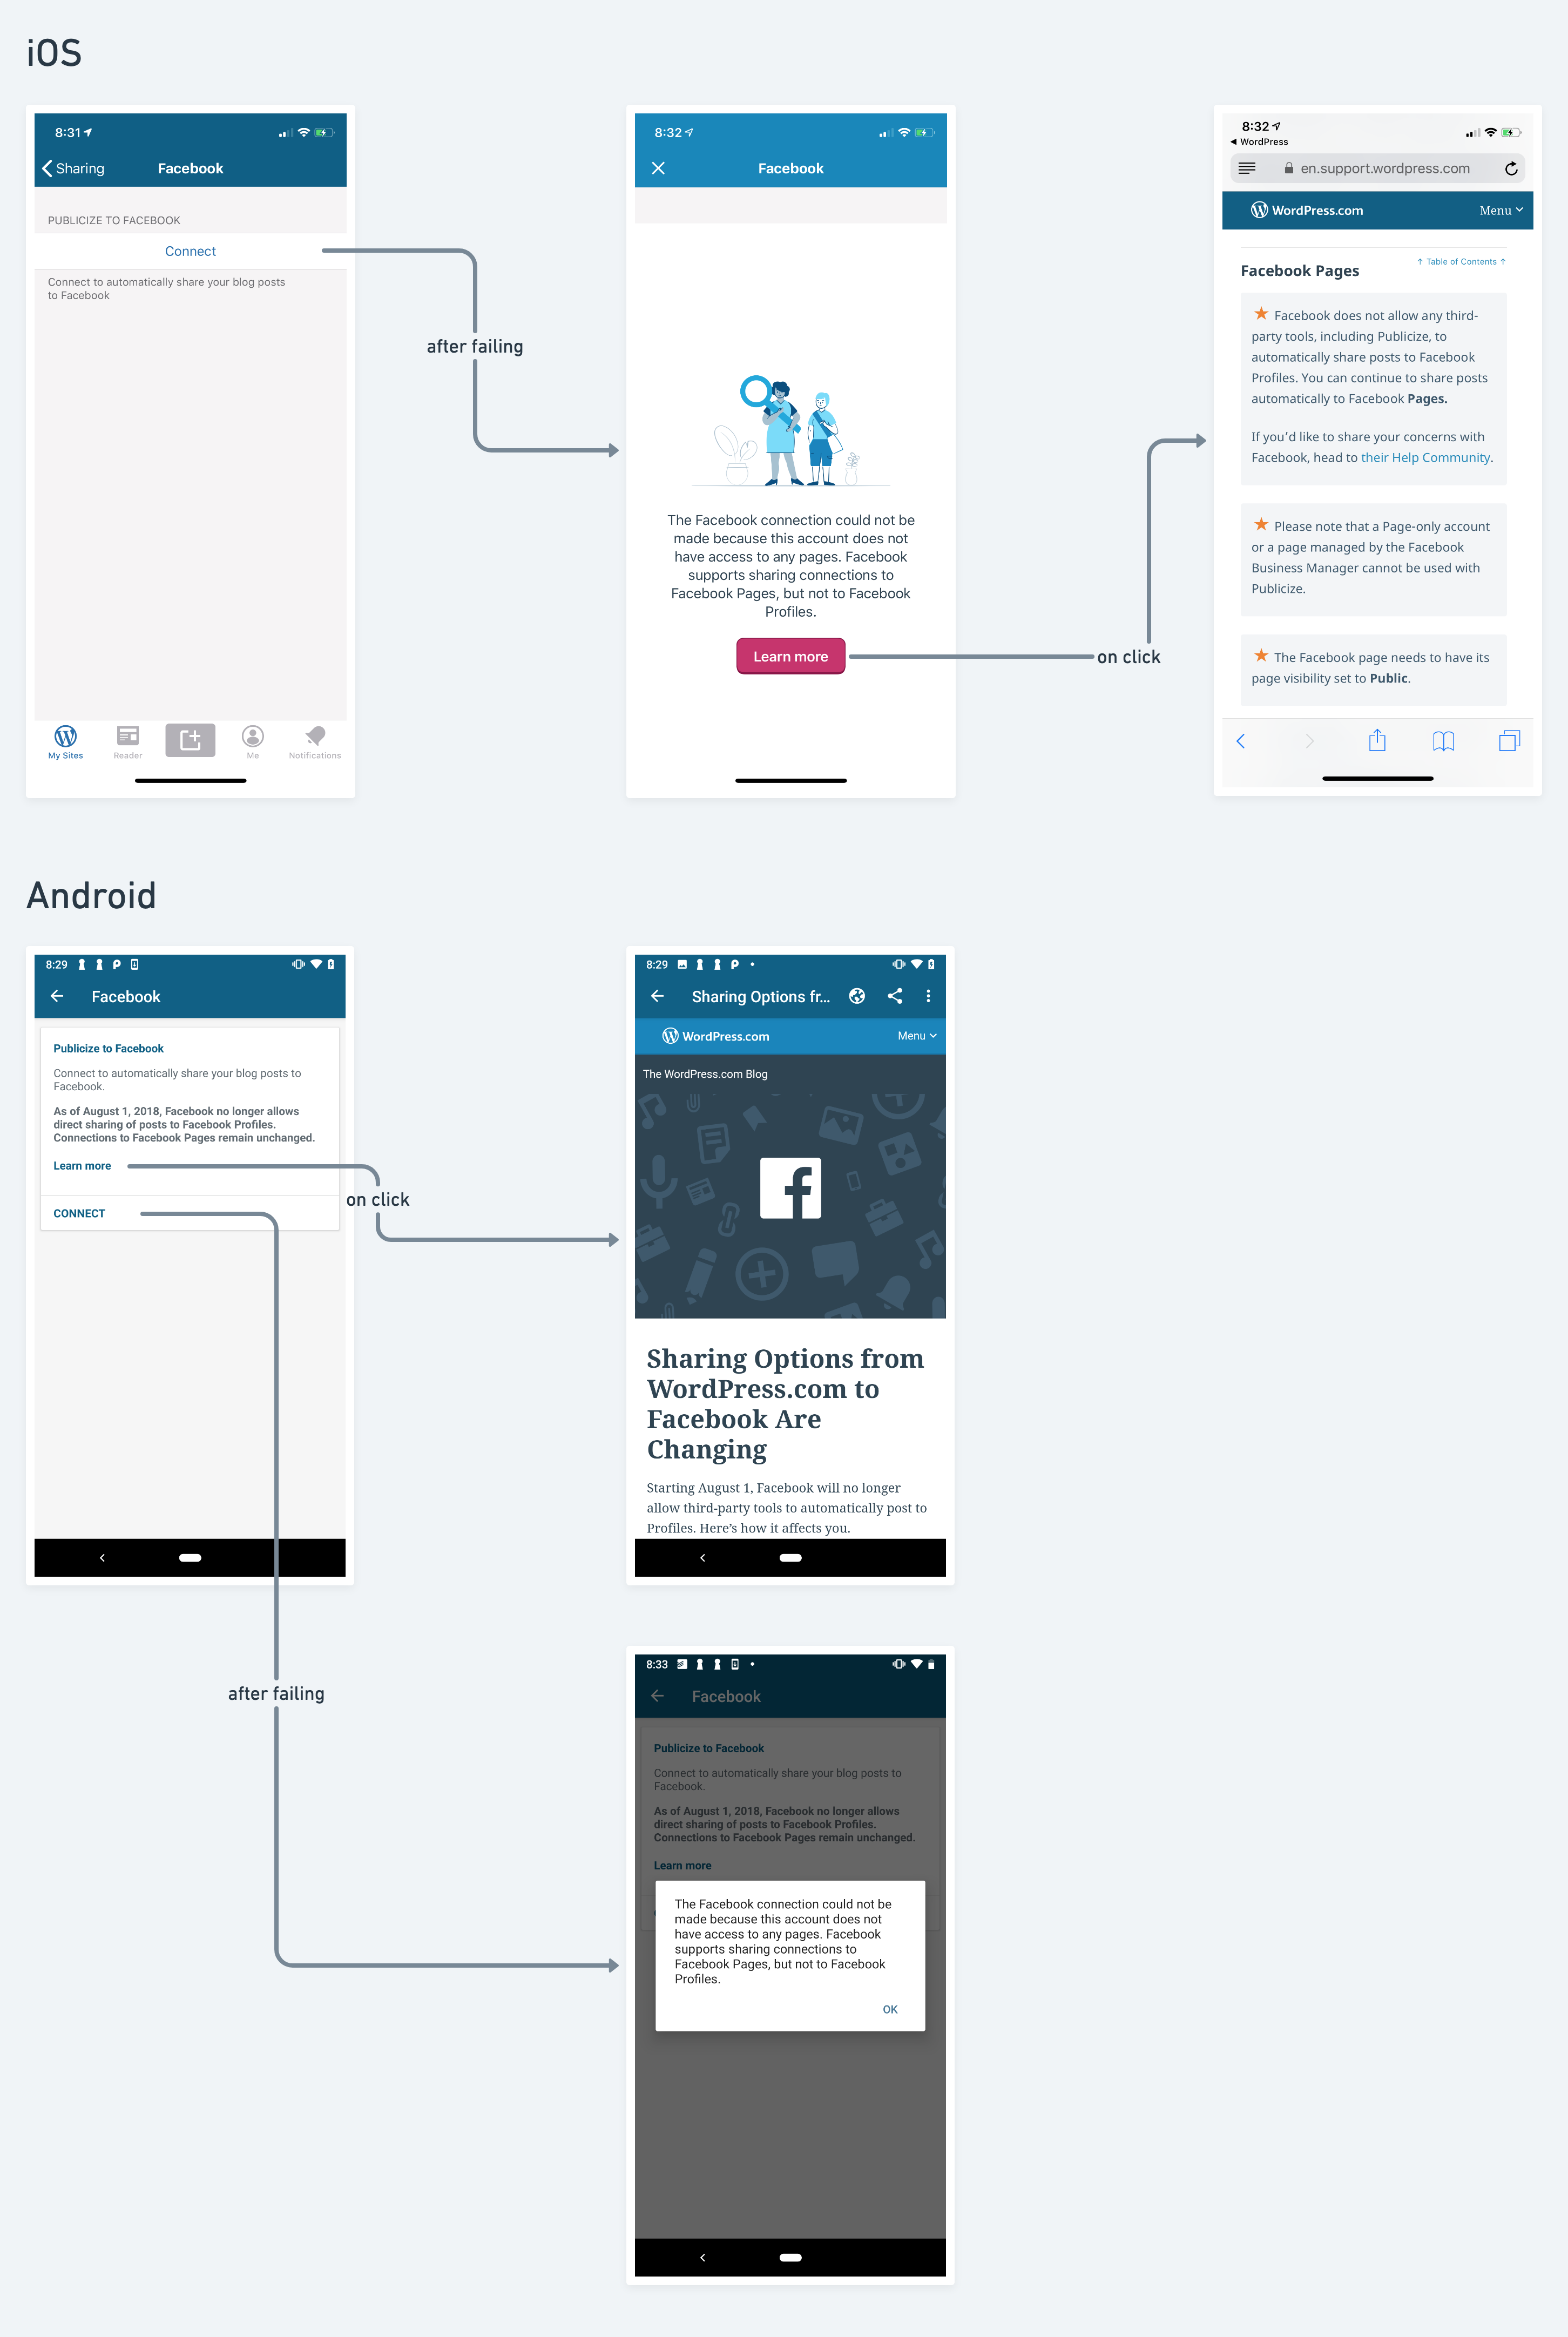 iOS and Android: Consistent messaging in Publicize to Facebook